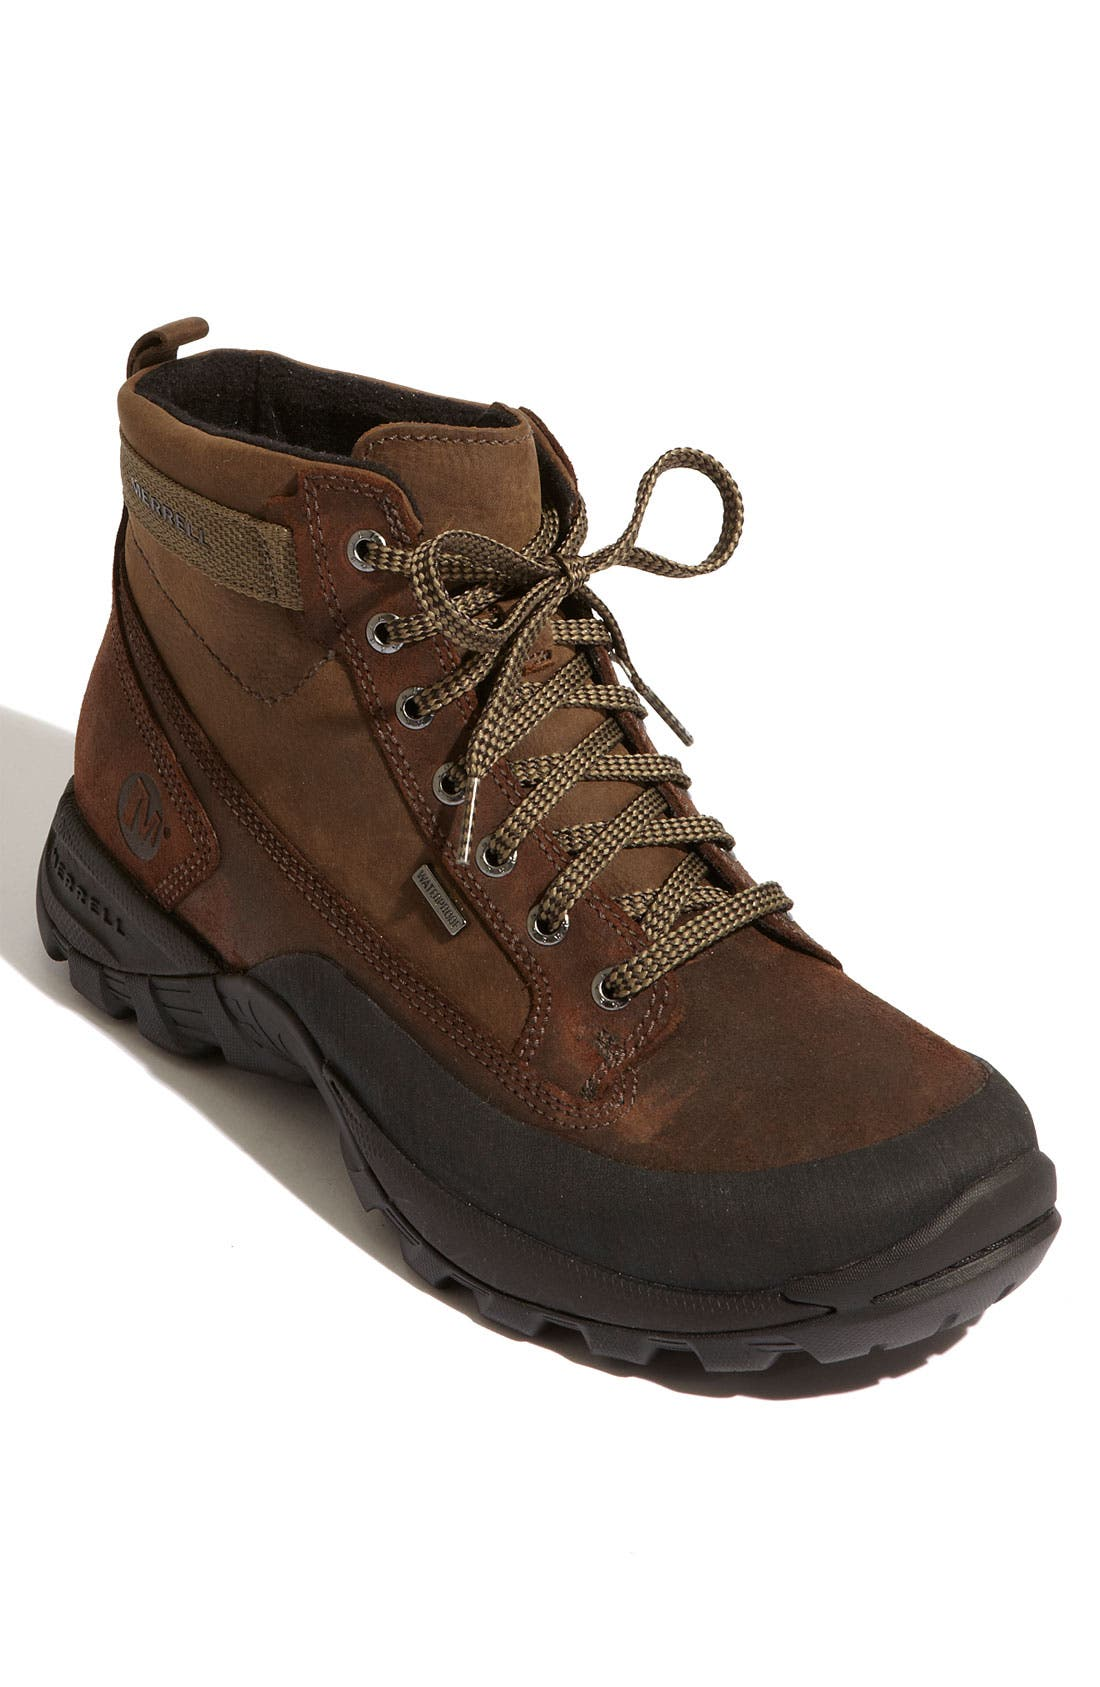 Main Image - Merrell 'Graz' Waterproof Boot (Online Only)